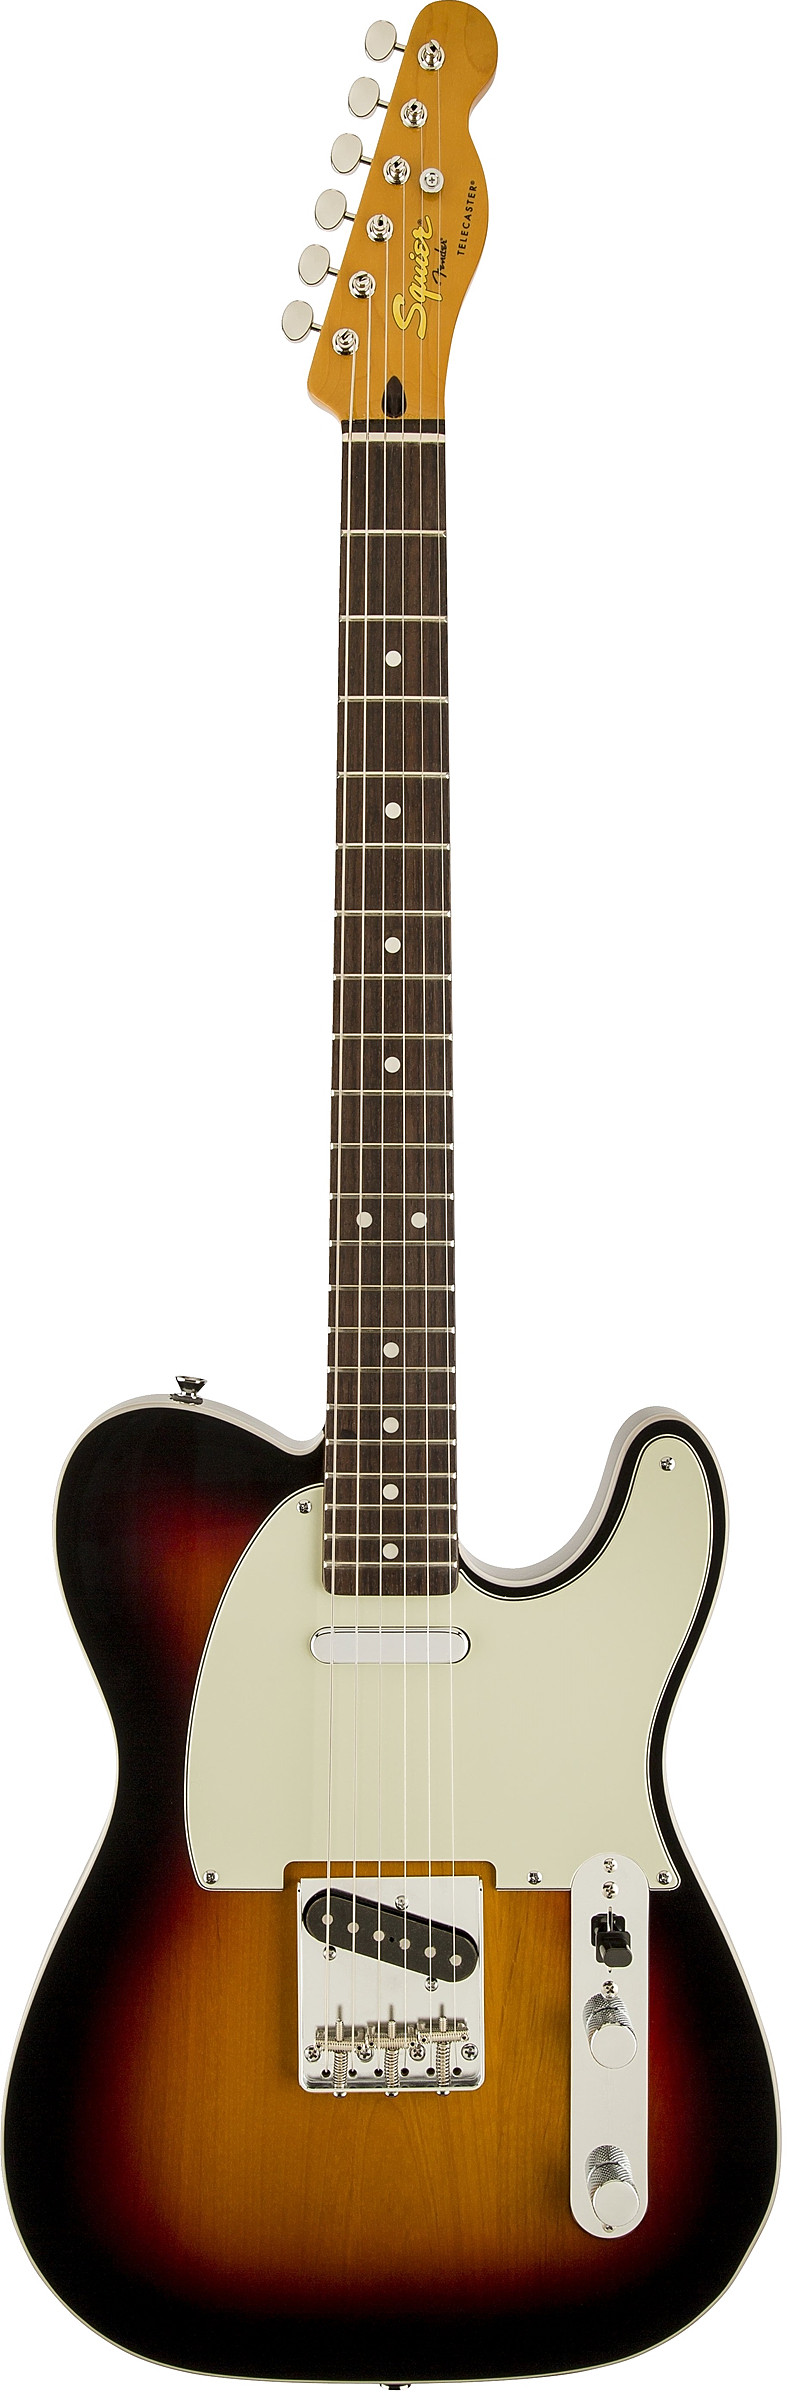 squier by fender classic vibe custom telecaster review. Black Bedroom Furniture Sets. Home Design Ideas